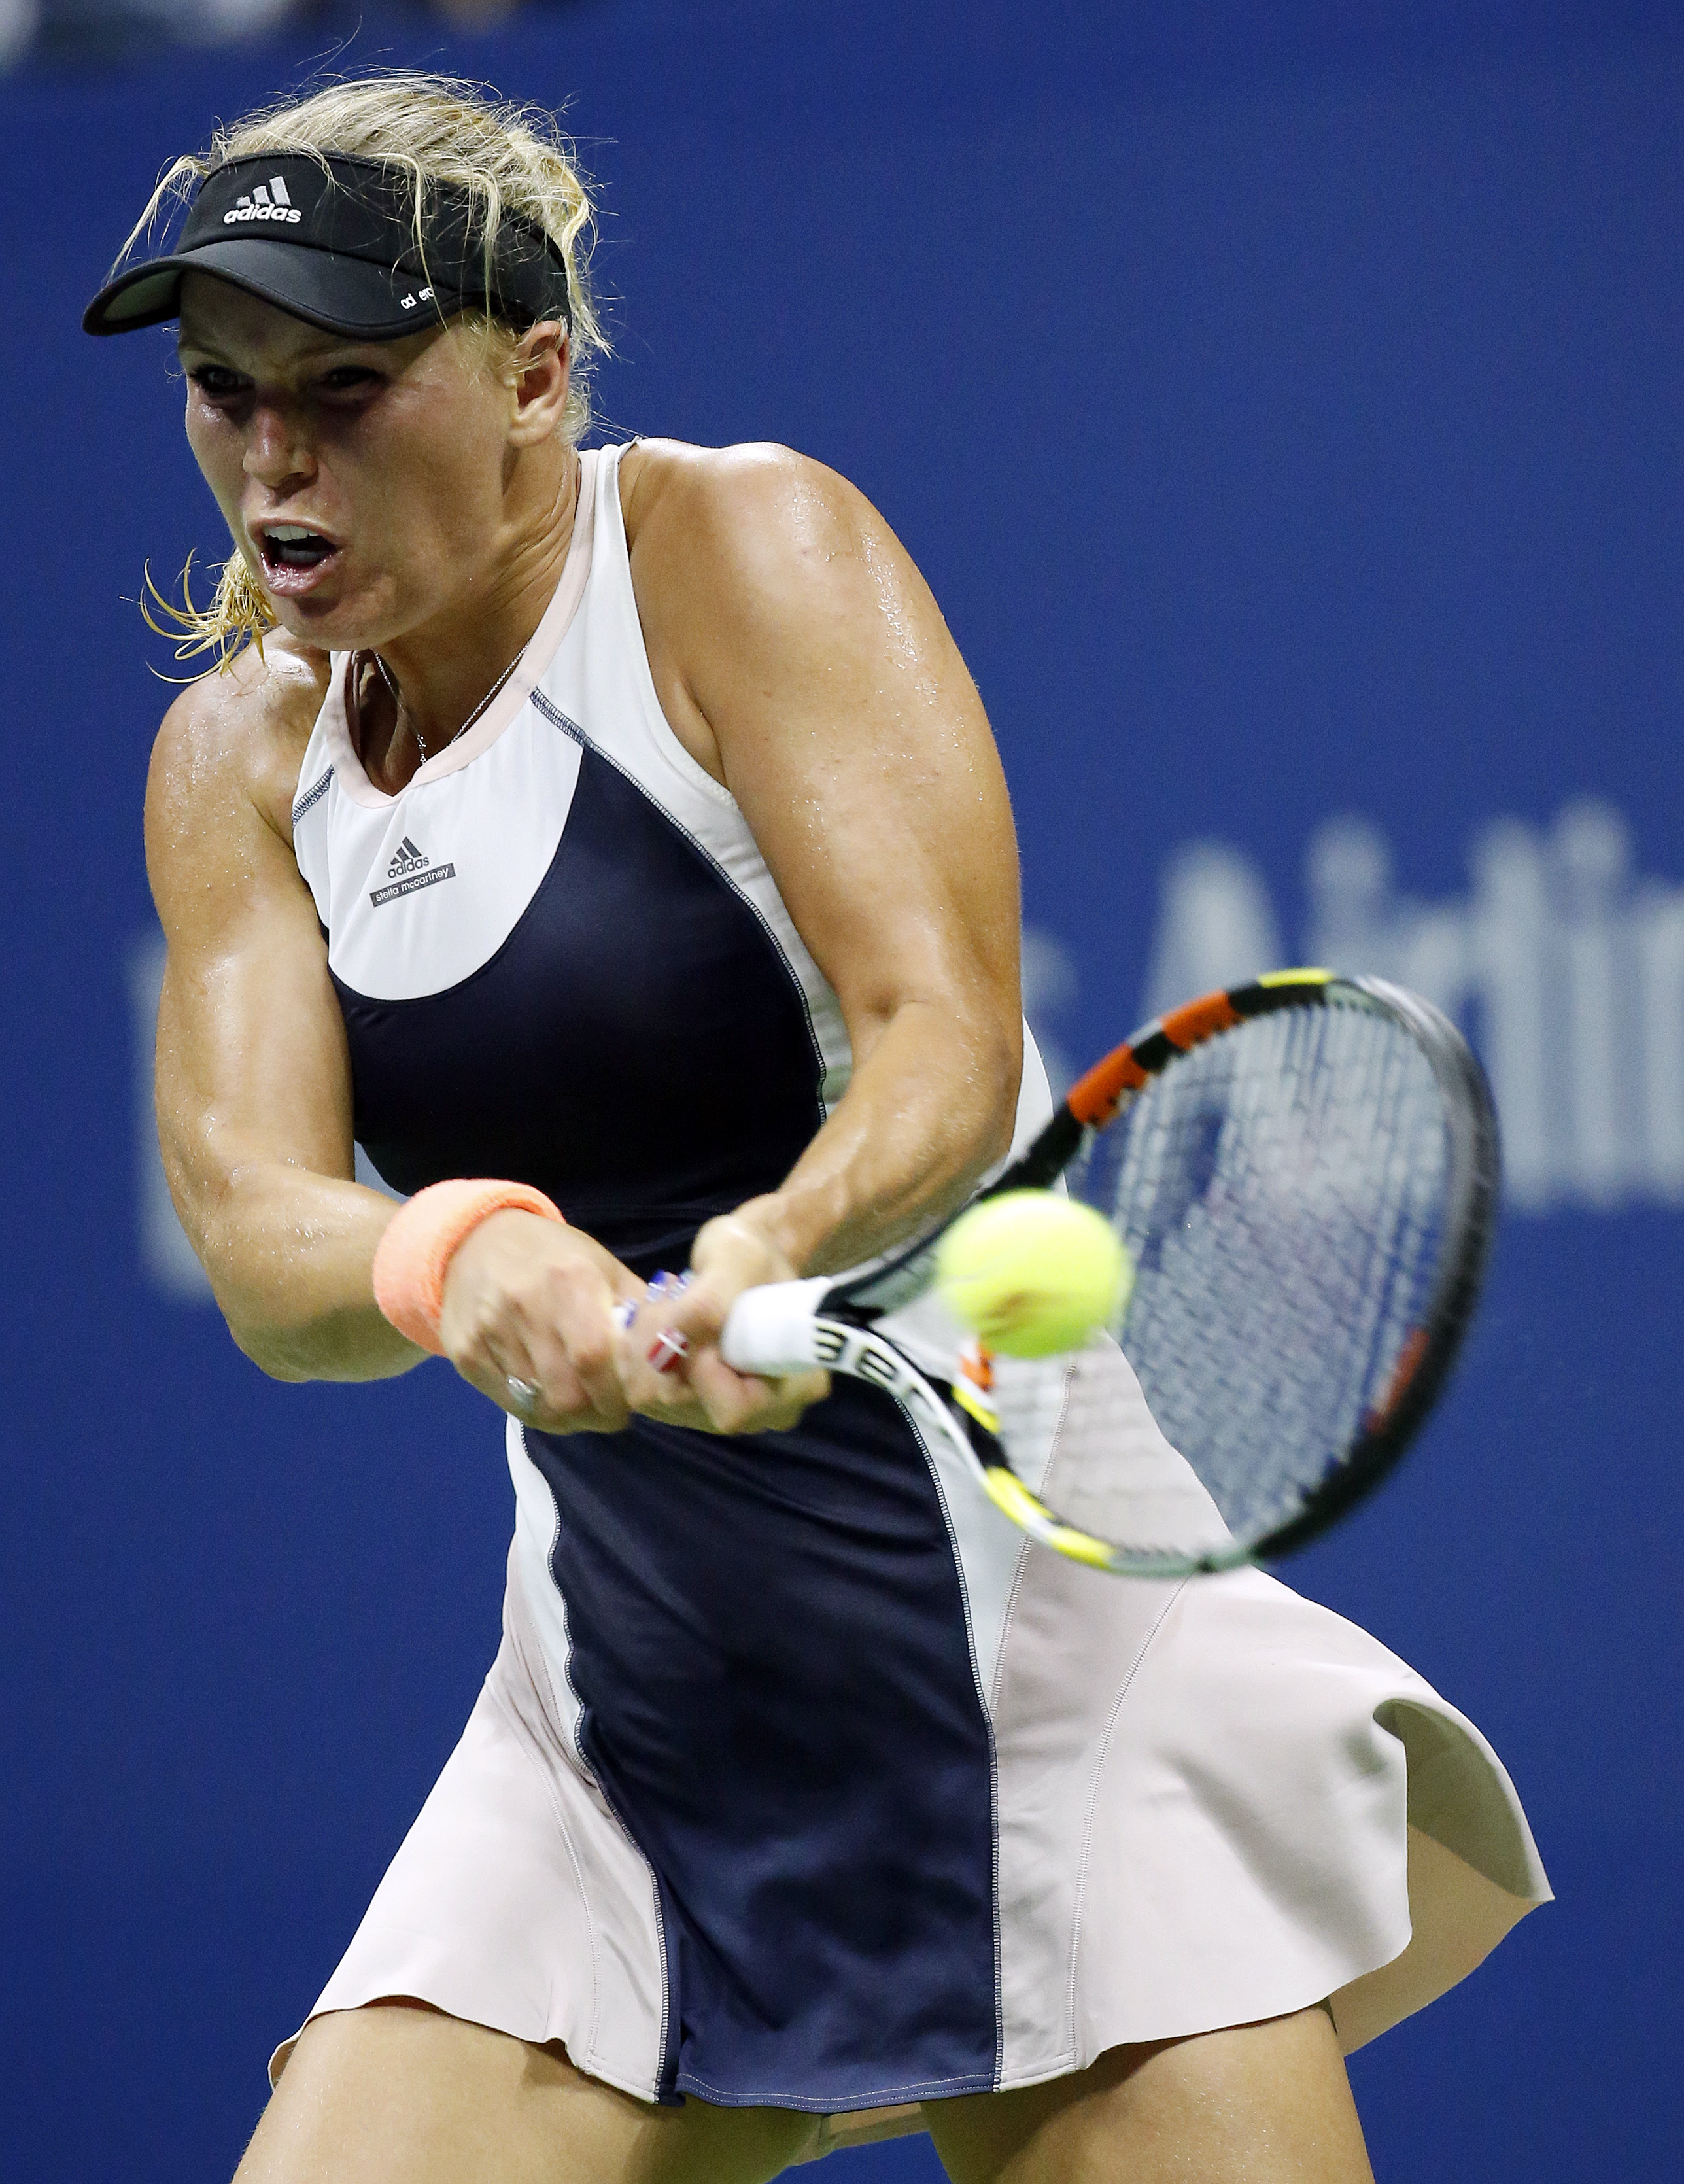 Caroline Wozniacki, of Denmark, returns a shot to Petra Cetkovska, of the Czech Republic, during the second round of the U.S. Open tennis tournament in New York, Thursday, Sept. 3, 2015. (AP Photo/Julio Cortez)